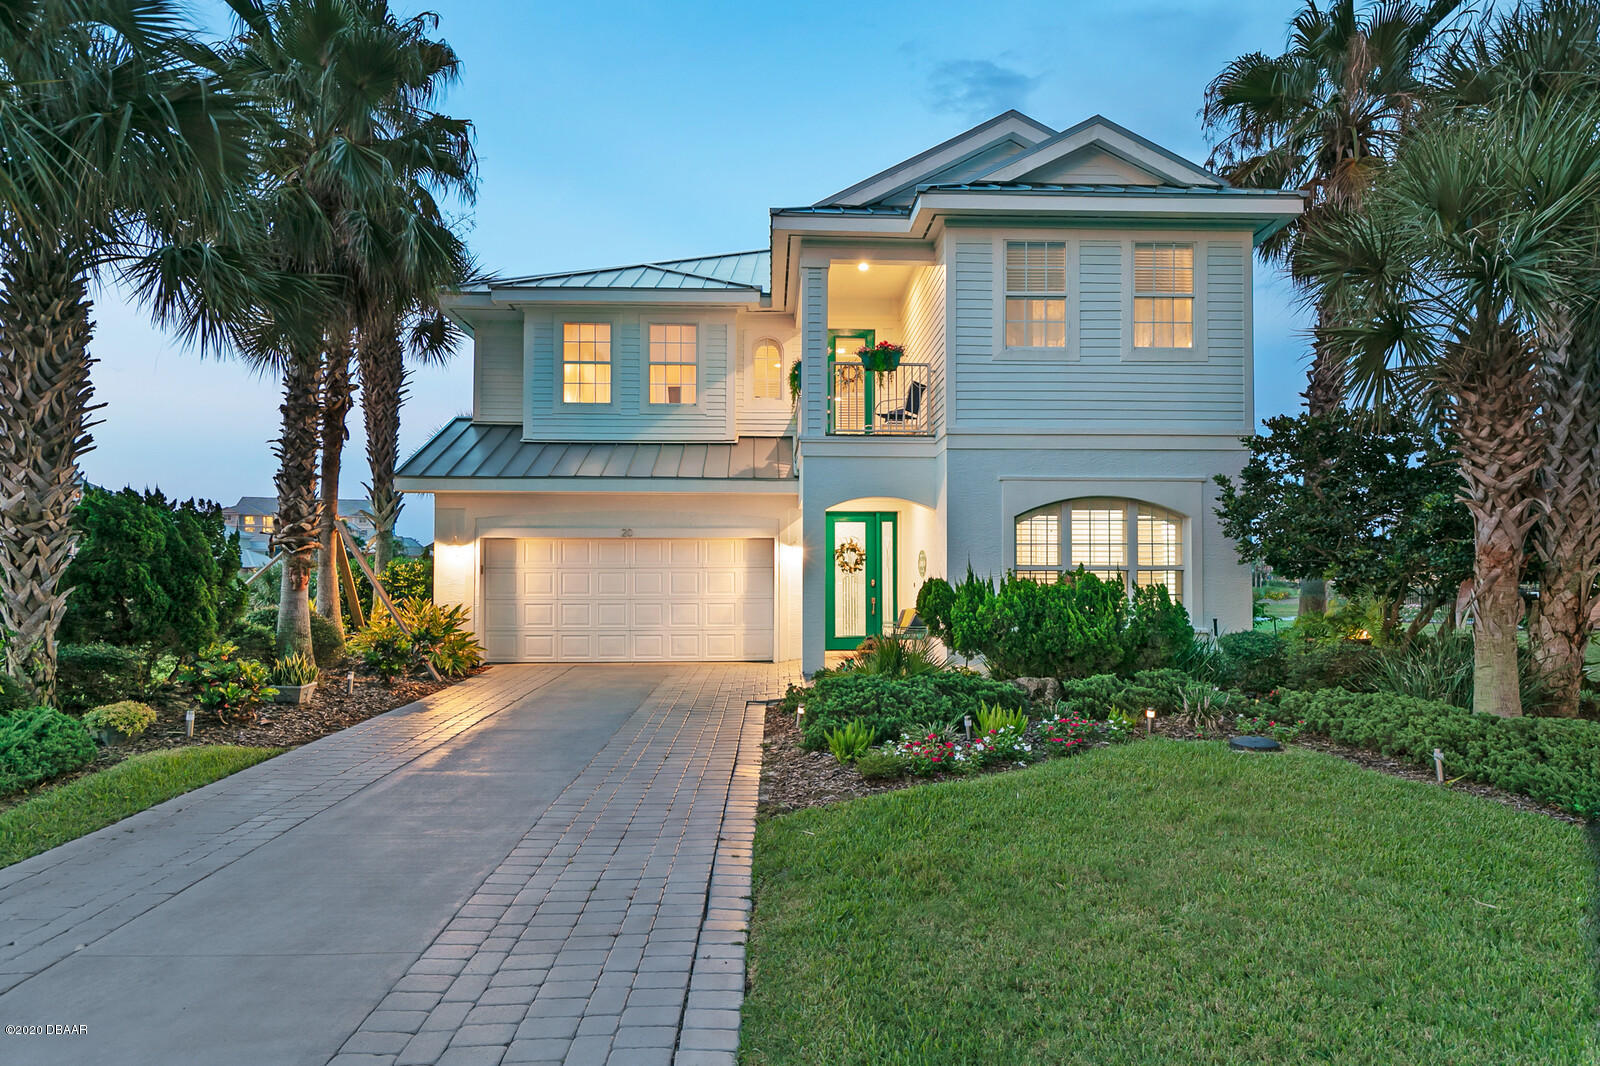 Photo of 20 Cinnamon Beach Way, Palm Coast, FL 32137